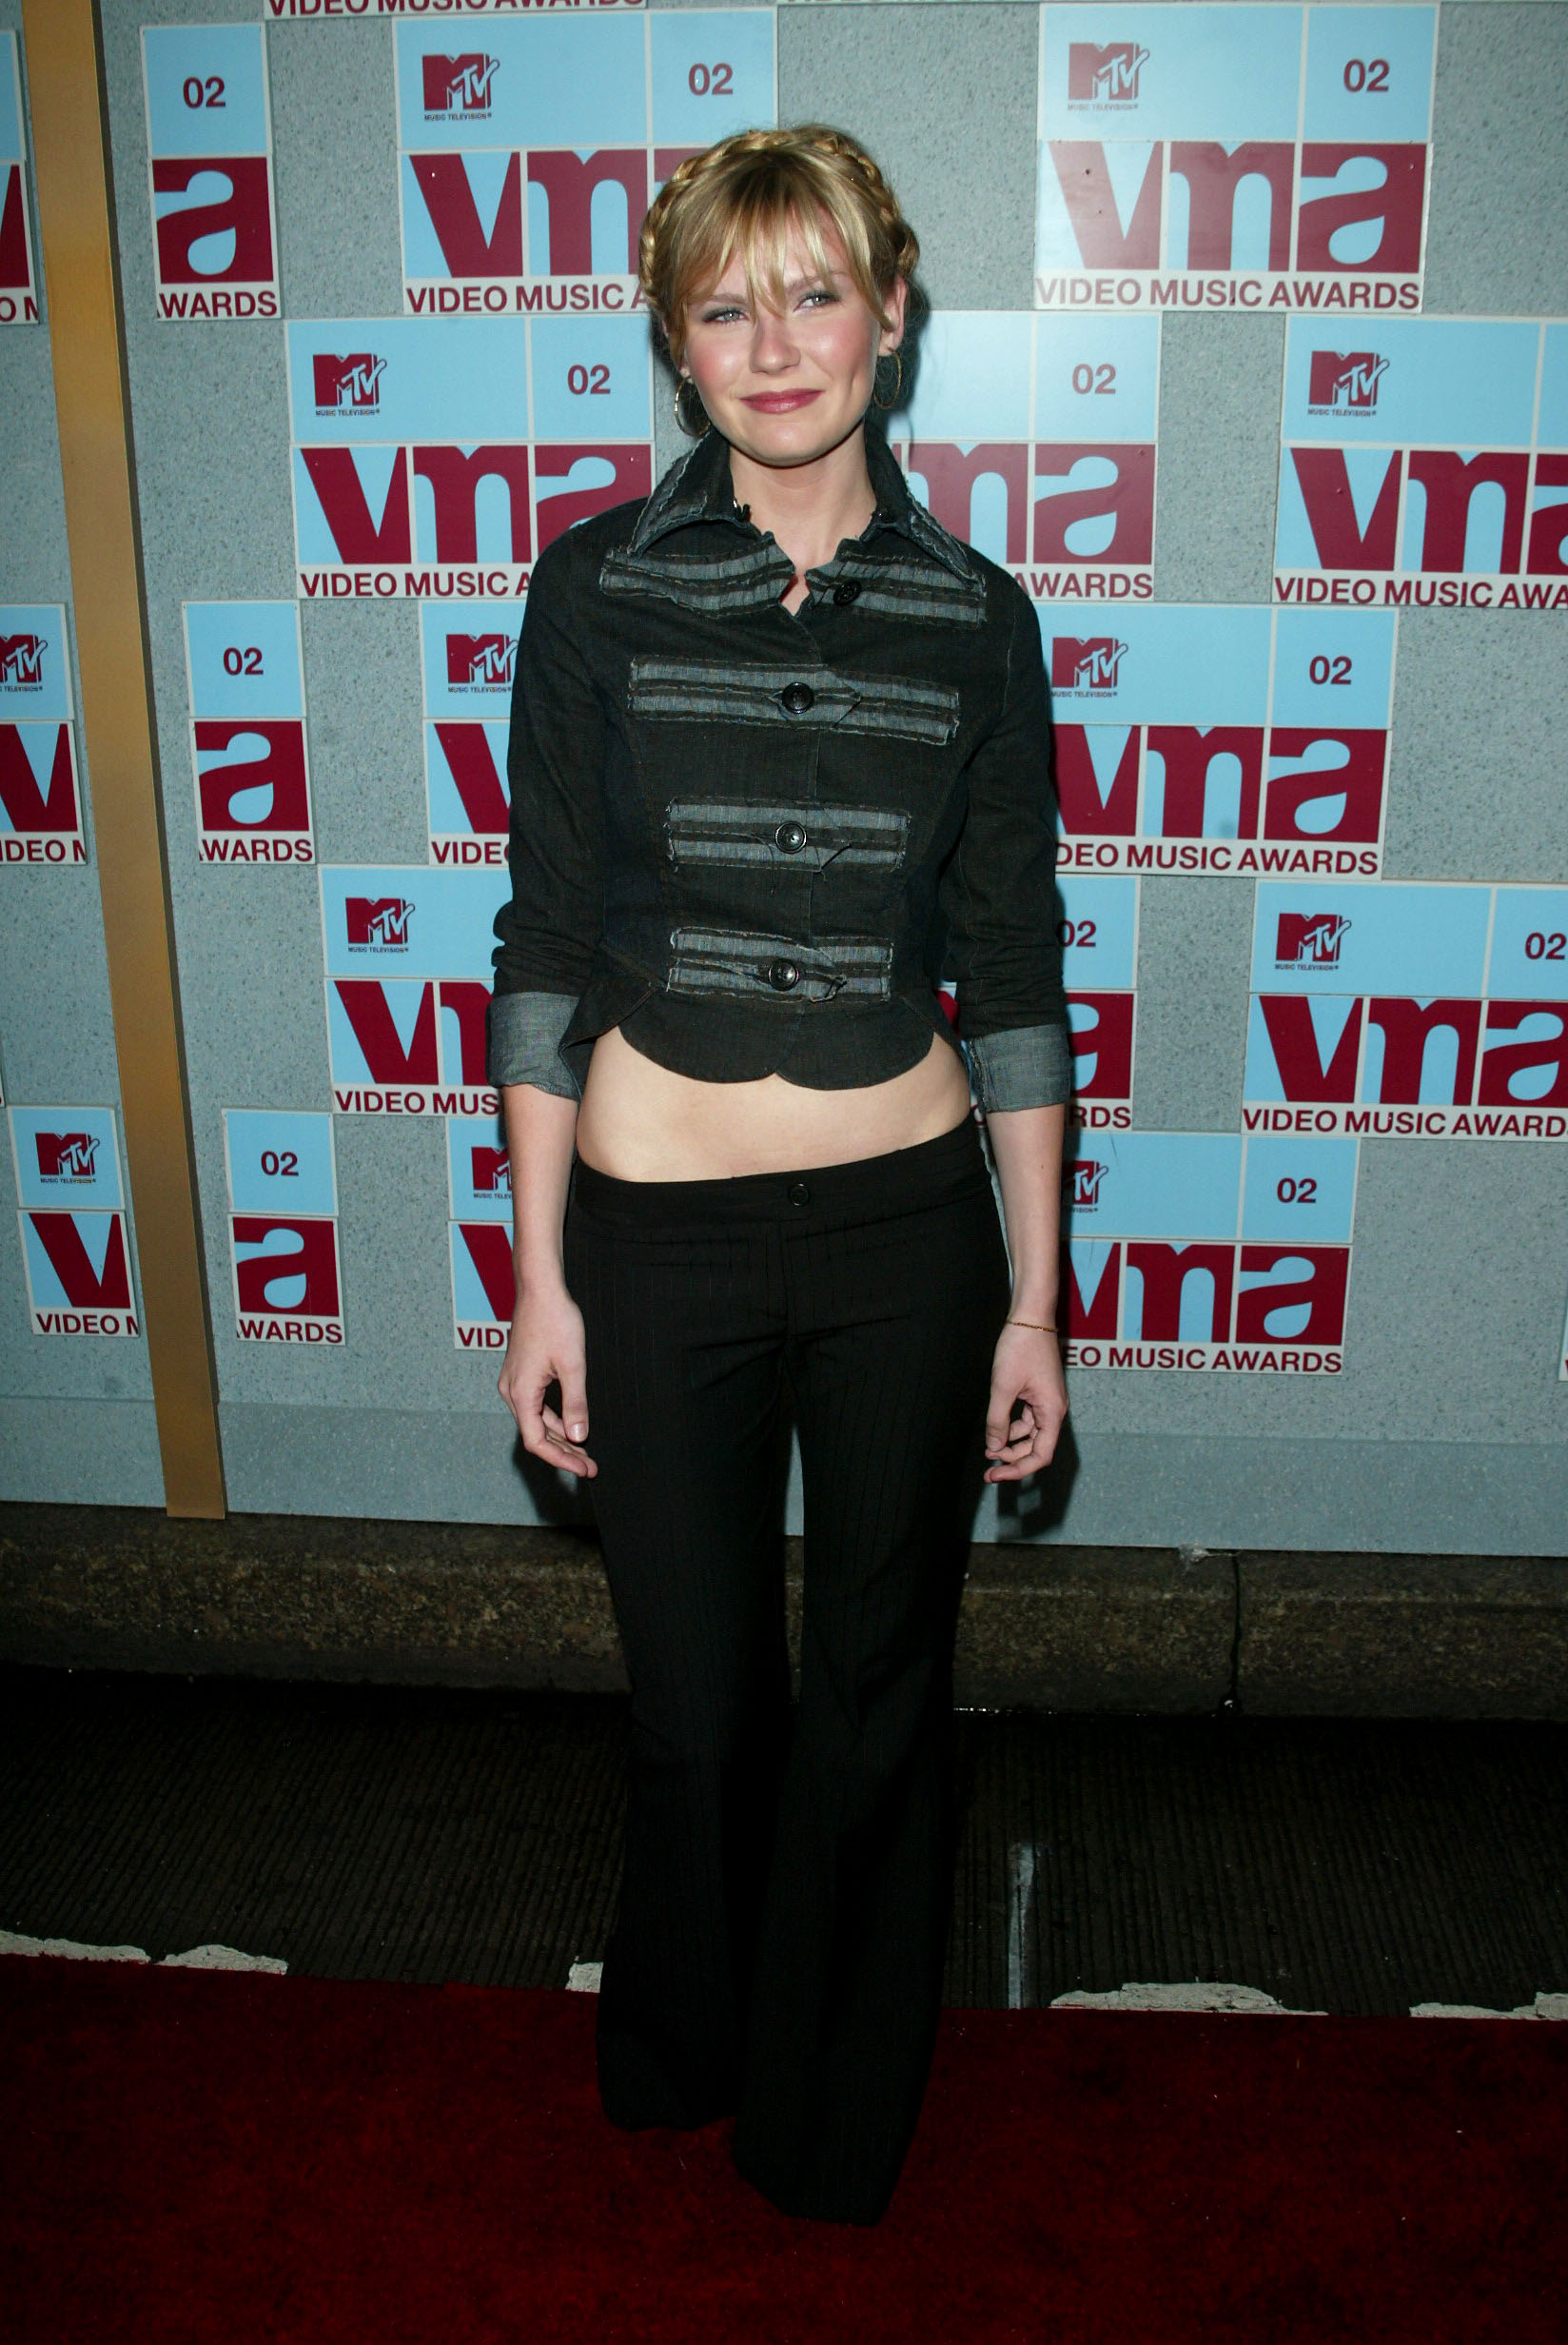 kirsten dunst on the vma's red carpet in low rise pants and 00s style